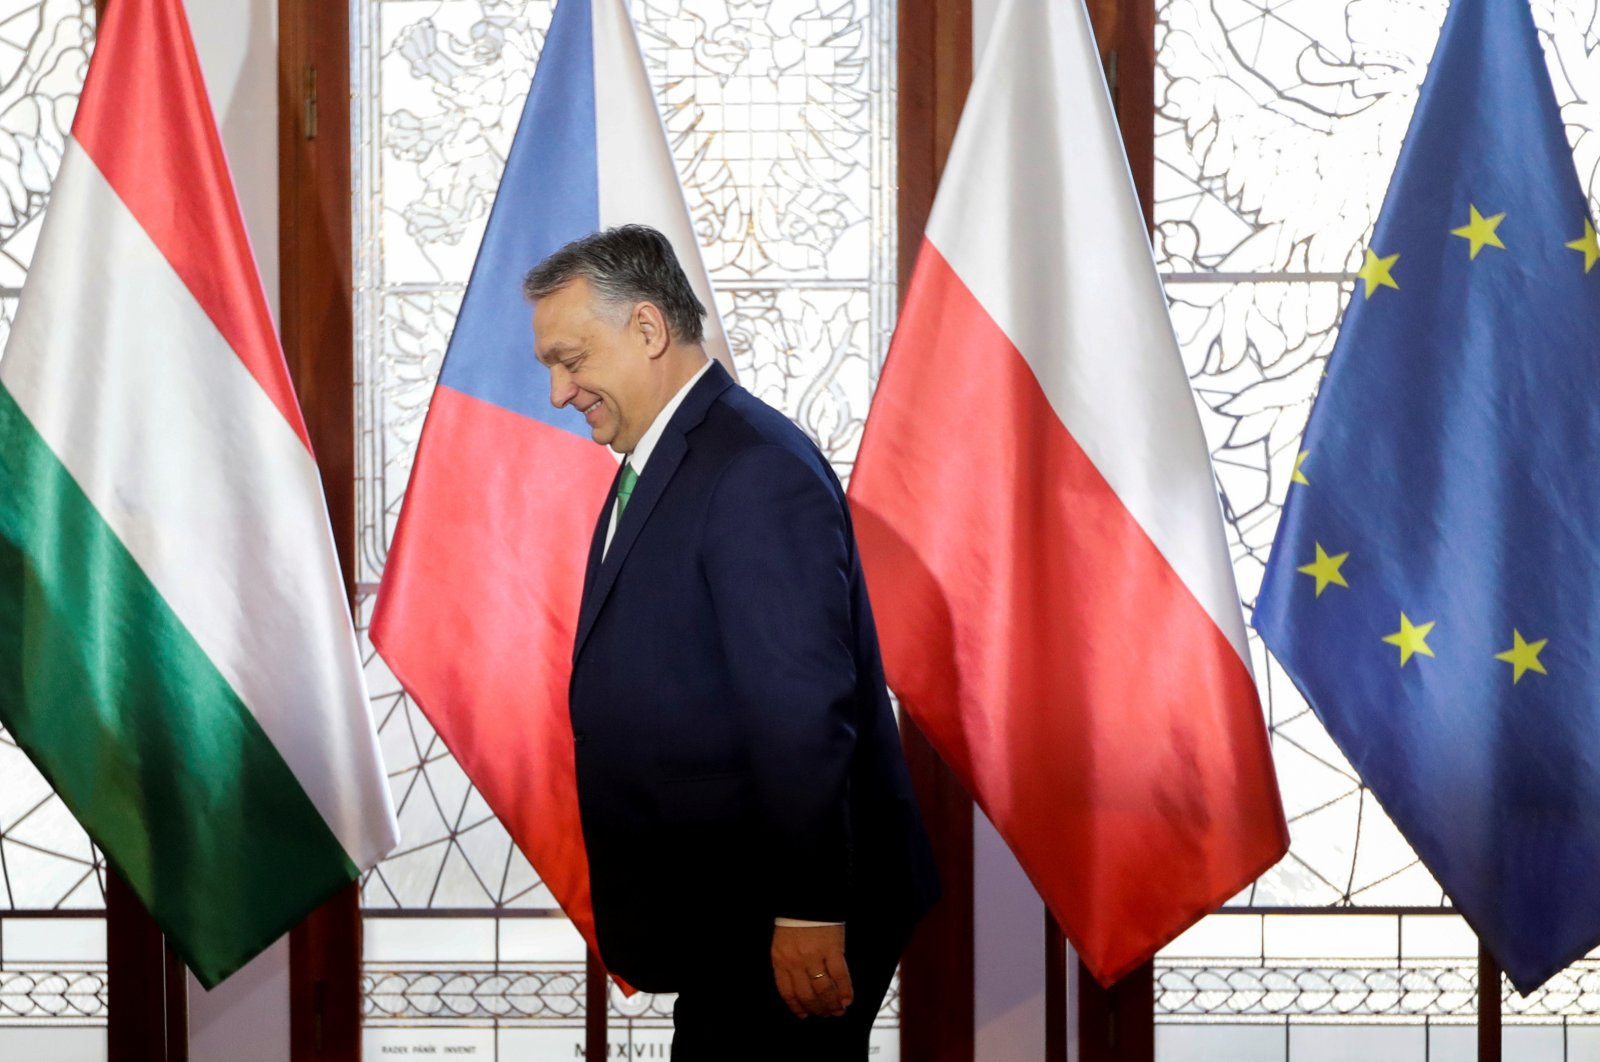 Hungary's Prime Minister Viktor Orban attends the summit of the Visegrad Group (V4) countries, in Prague, Czech Republic, March 4, 2020. (Reuters Photo)